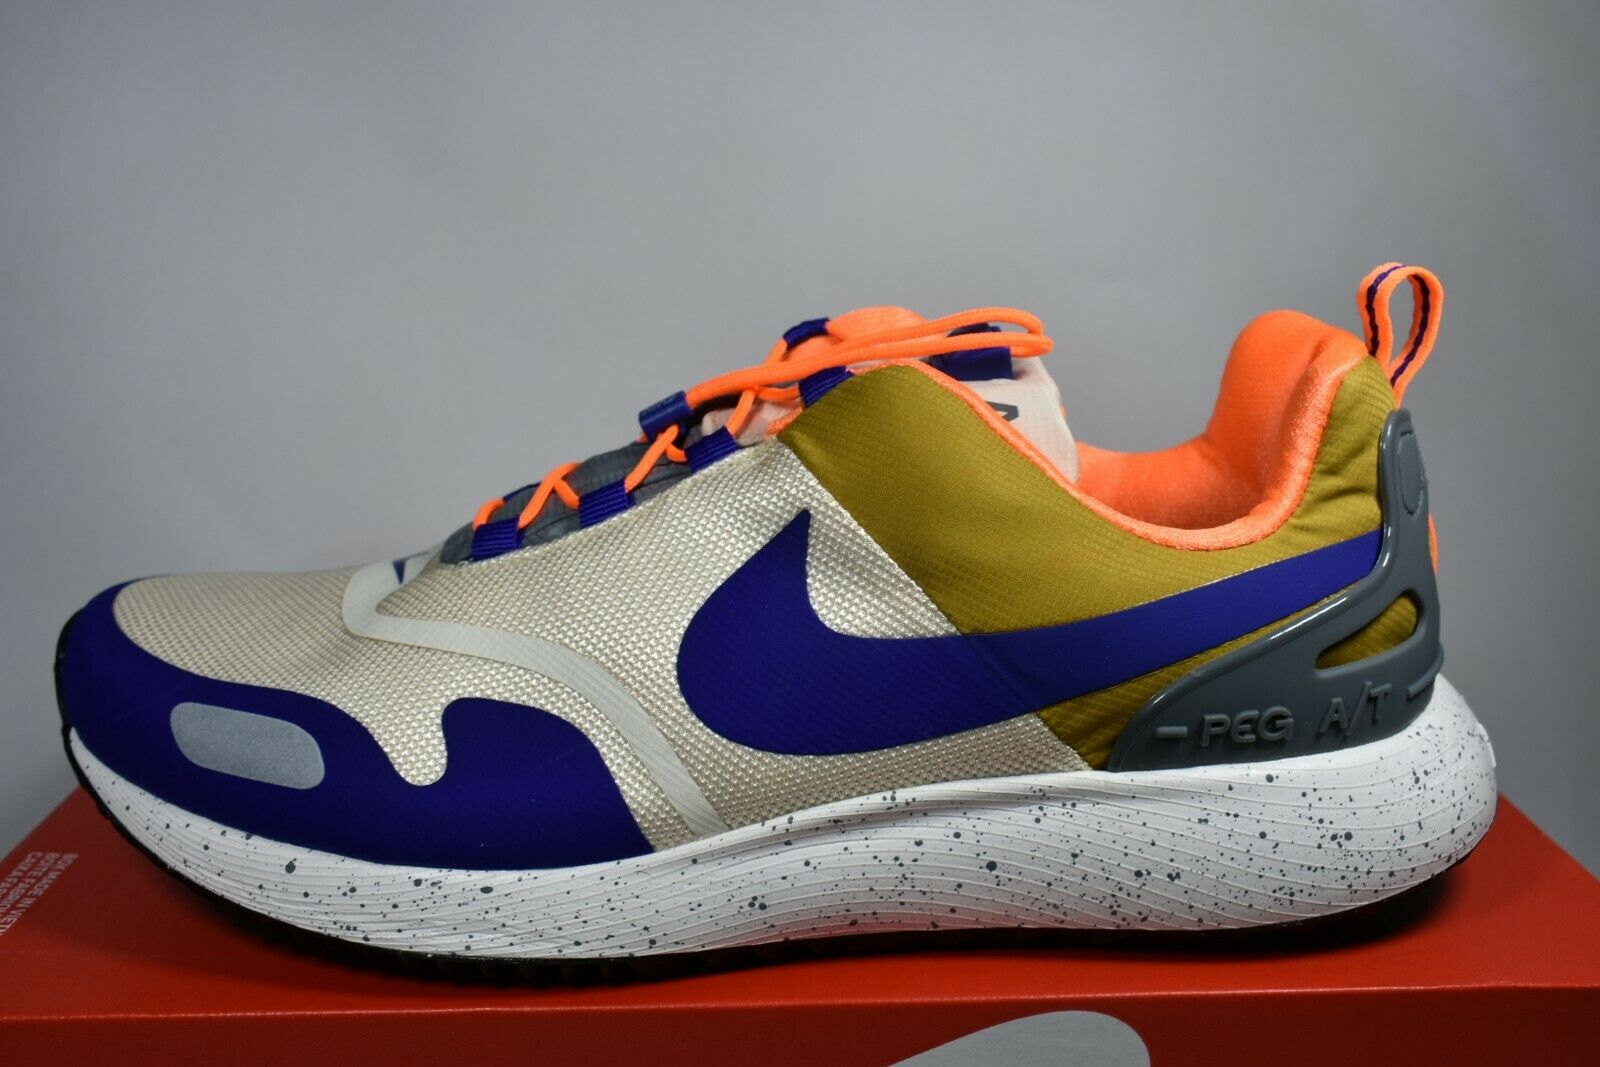 NIKE AIR PEGASUS A T WINTER QS MEN'S SHOES [SIZE 10.5] AO3296-200 CREAM CONCORD